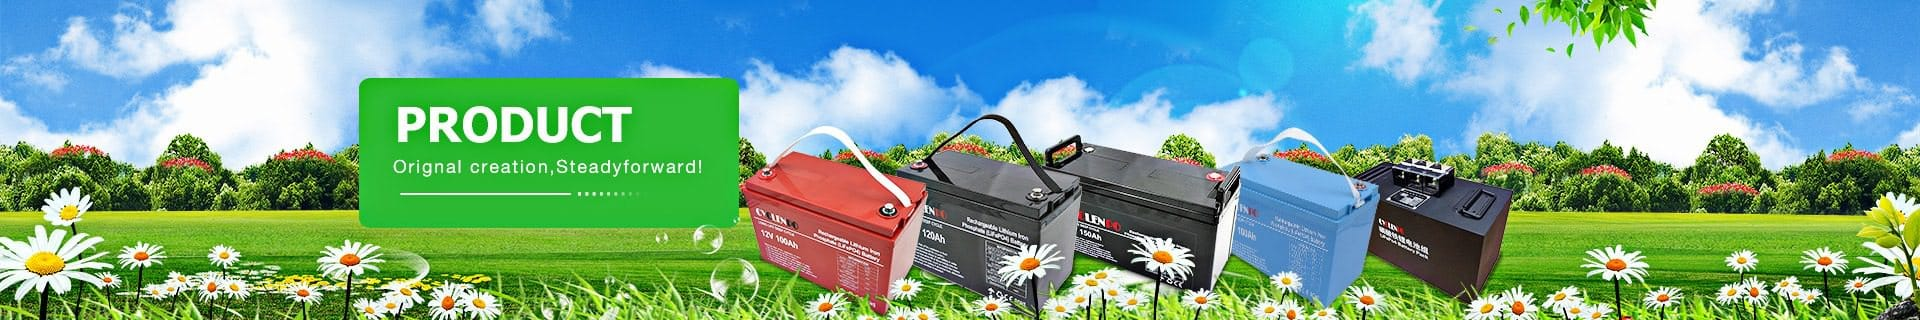 24v lifepo4 battery, lifepo4 24v, lifepo4 24v 100ah, travel trailer battery